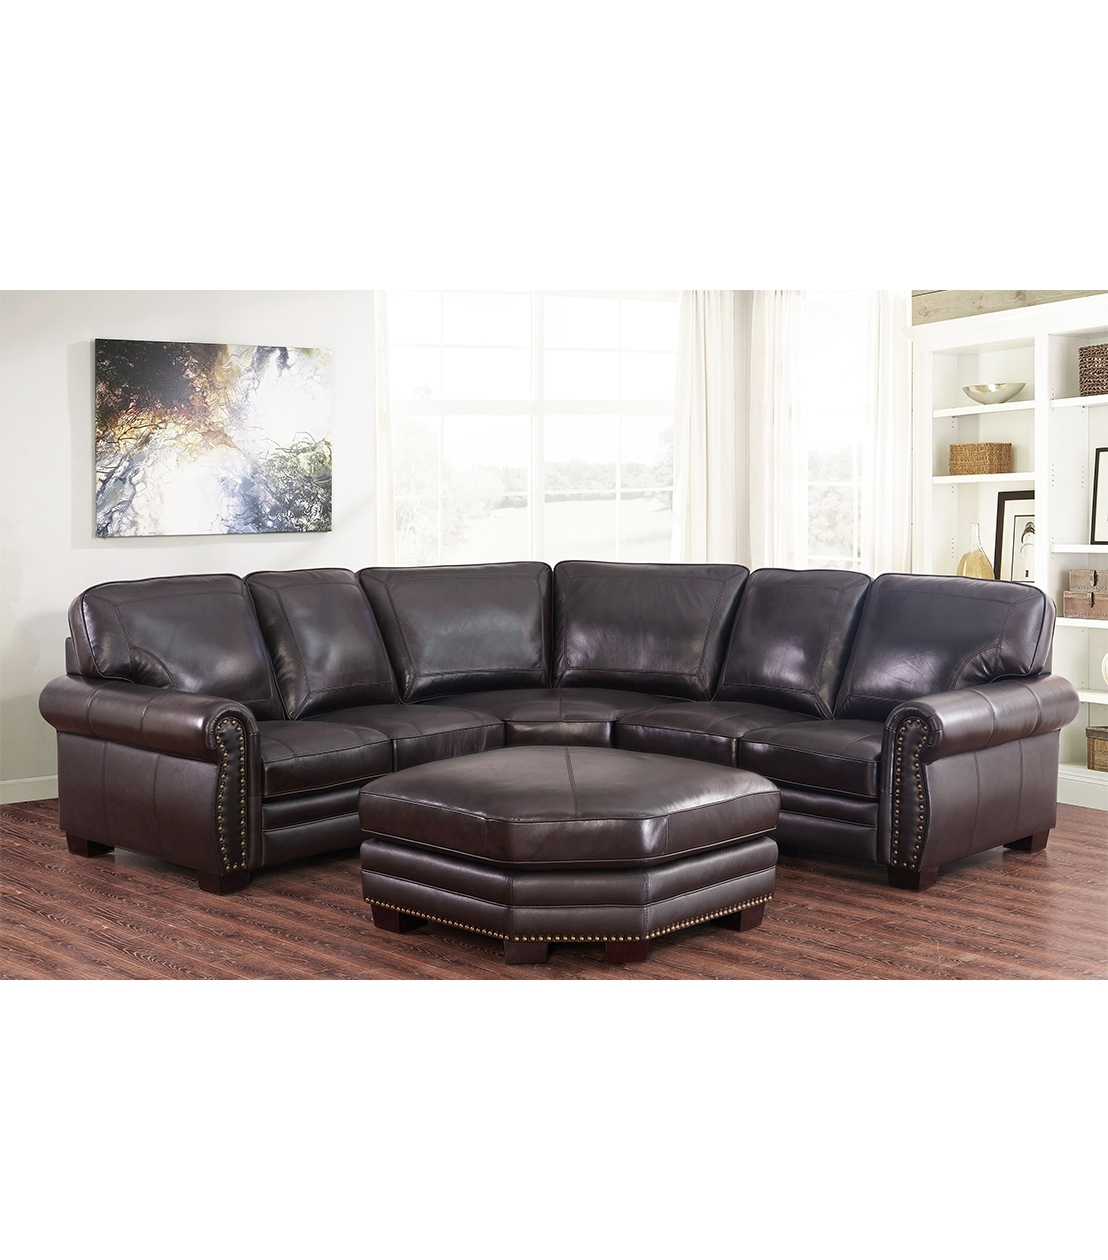 Sectionals : Adeline Leather Sectional pertaining to Adeline 3 Piece Sectionals (Image 26 of 30)